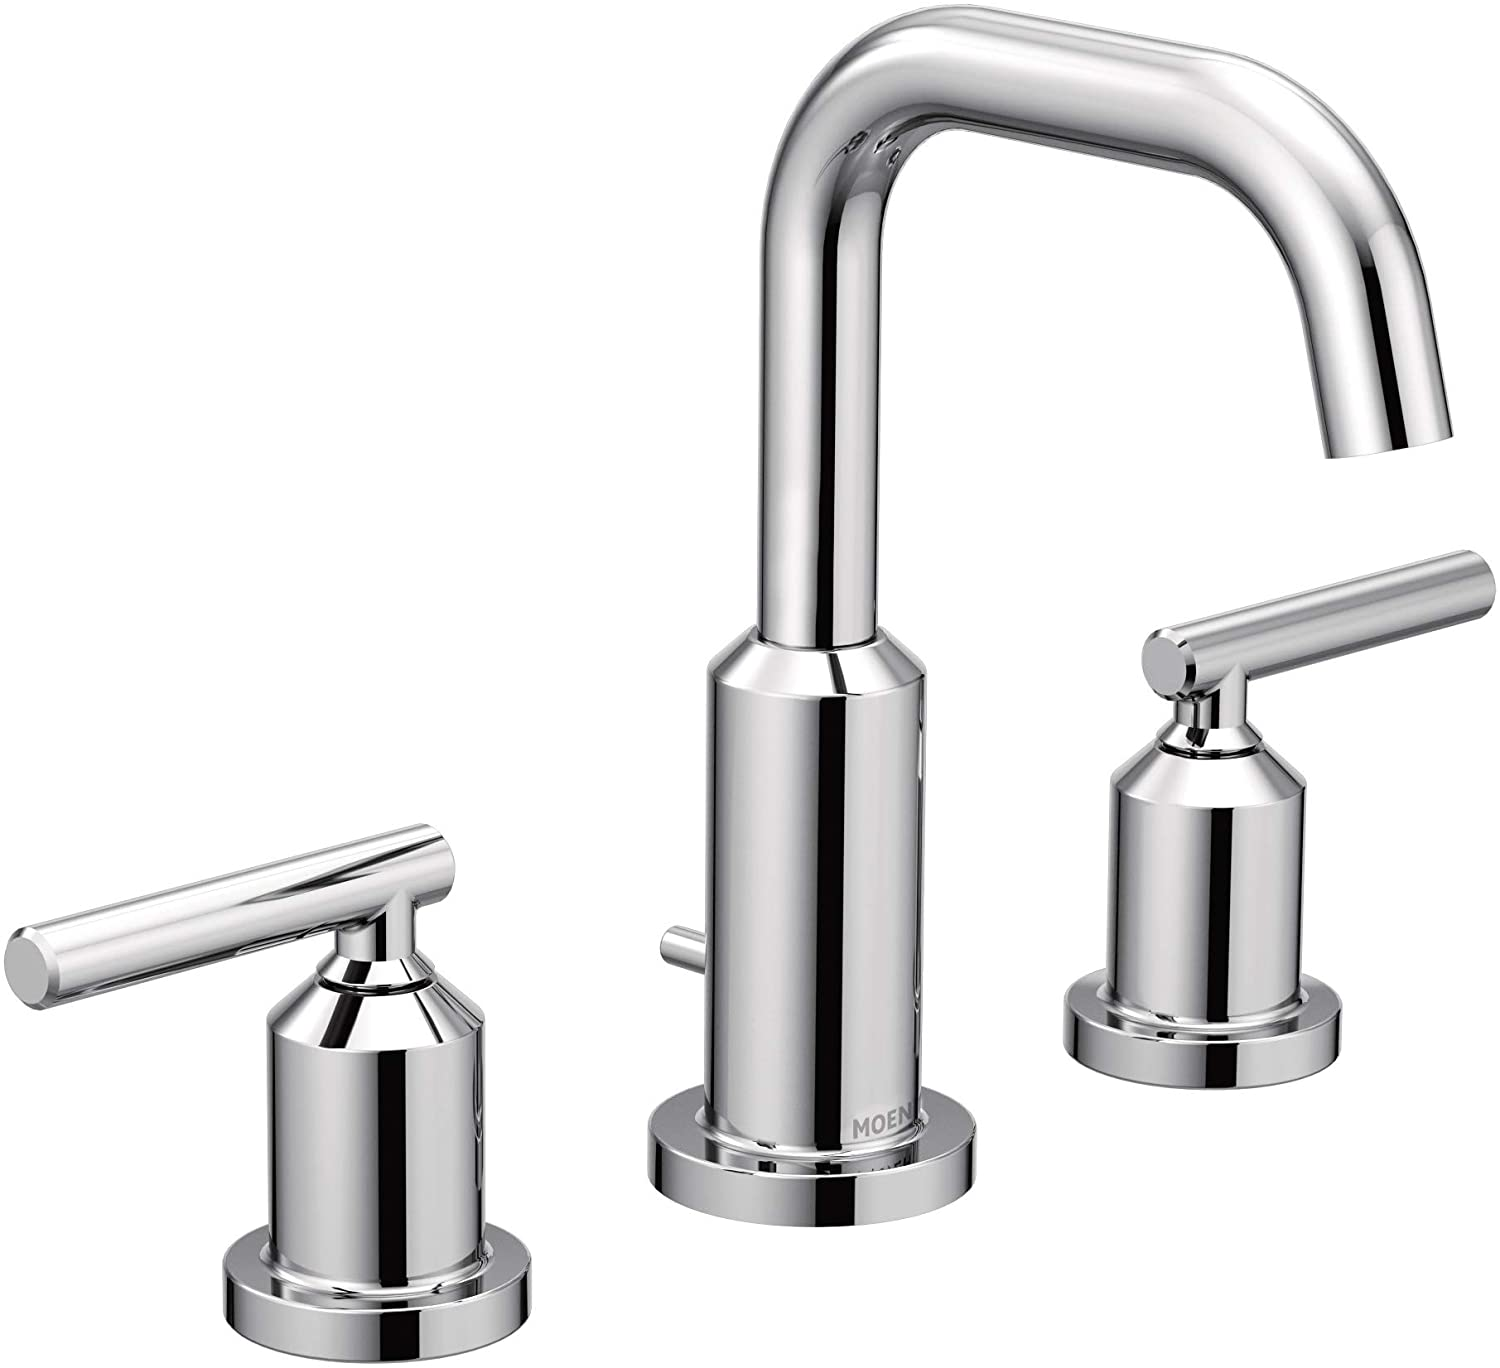 Moen T6142 Gibson Two Handle 8 Inch Widespread High Arc Modern Bathroom Sink Faucet Valve Required Chrome Amazon Com